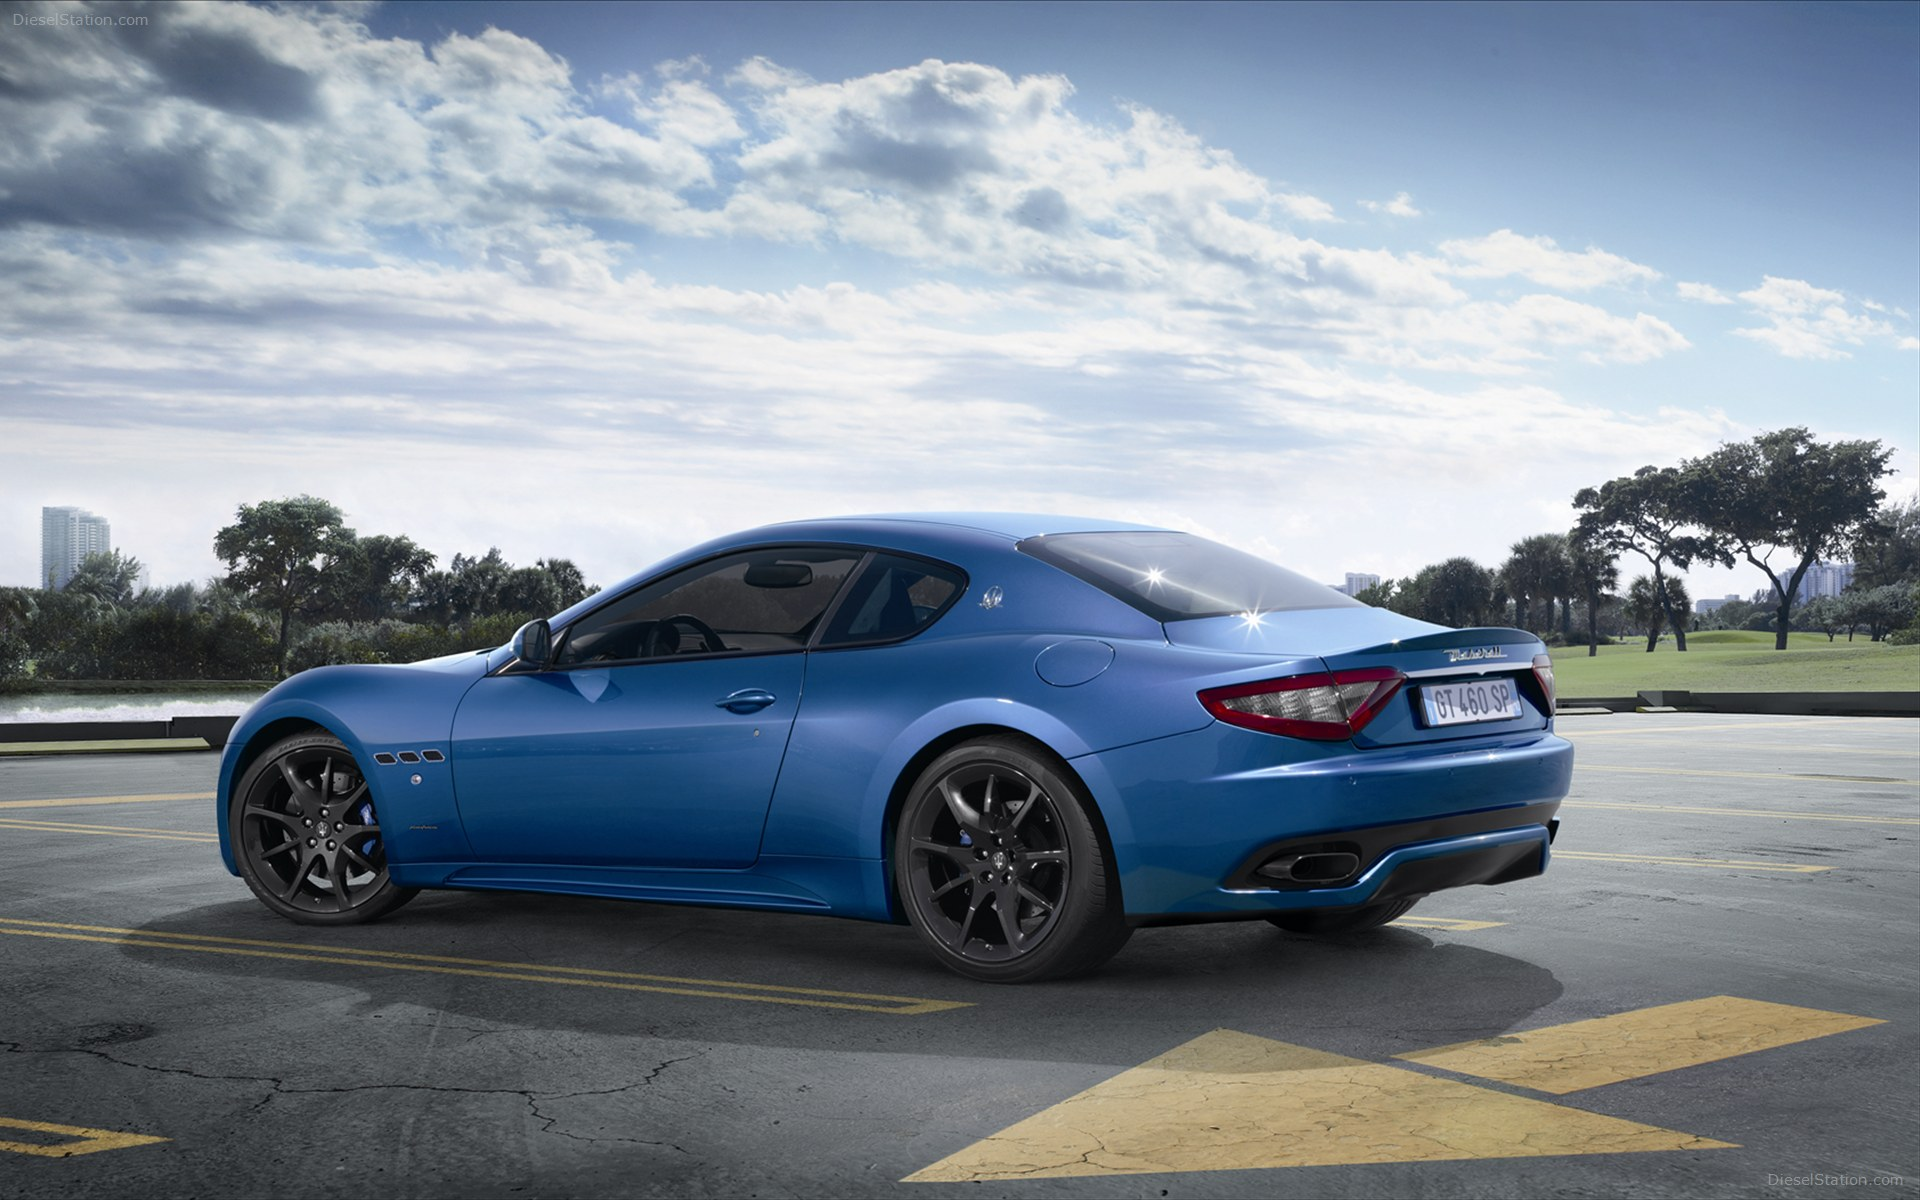 Sport Maserati Granturismo Widescreen Albums wallpapers HD 1920x1200